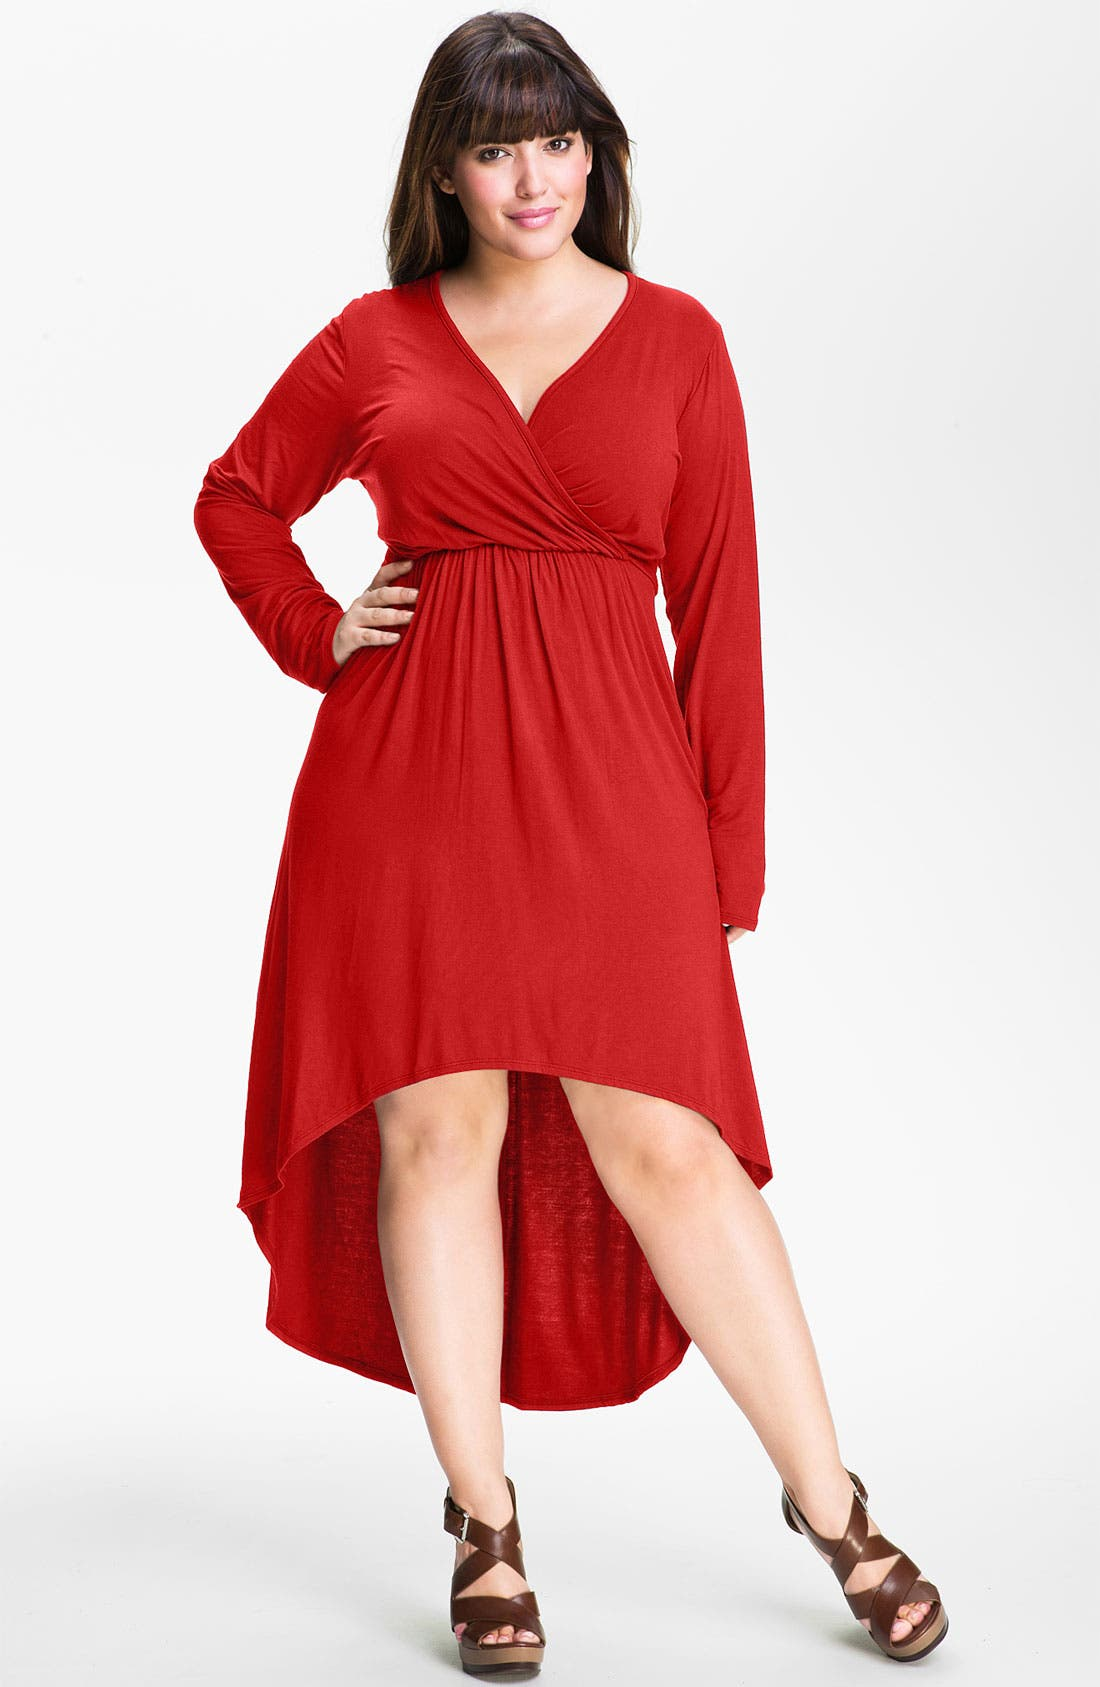 Alternate Image 1 Selected - Loveappella High Low Faux Wrap Dress (Plus)